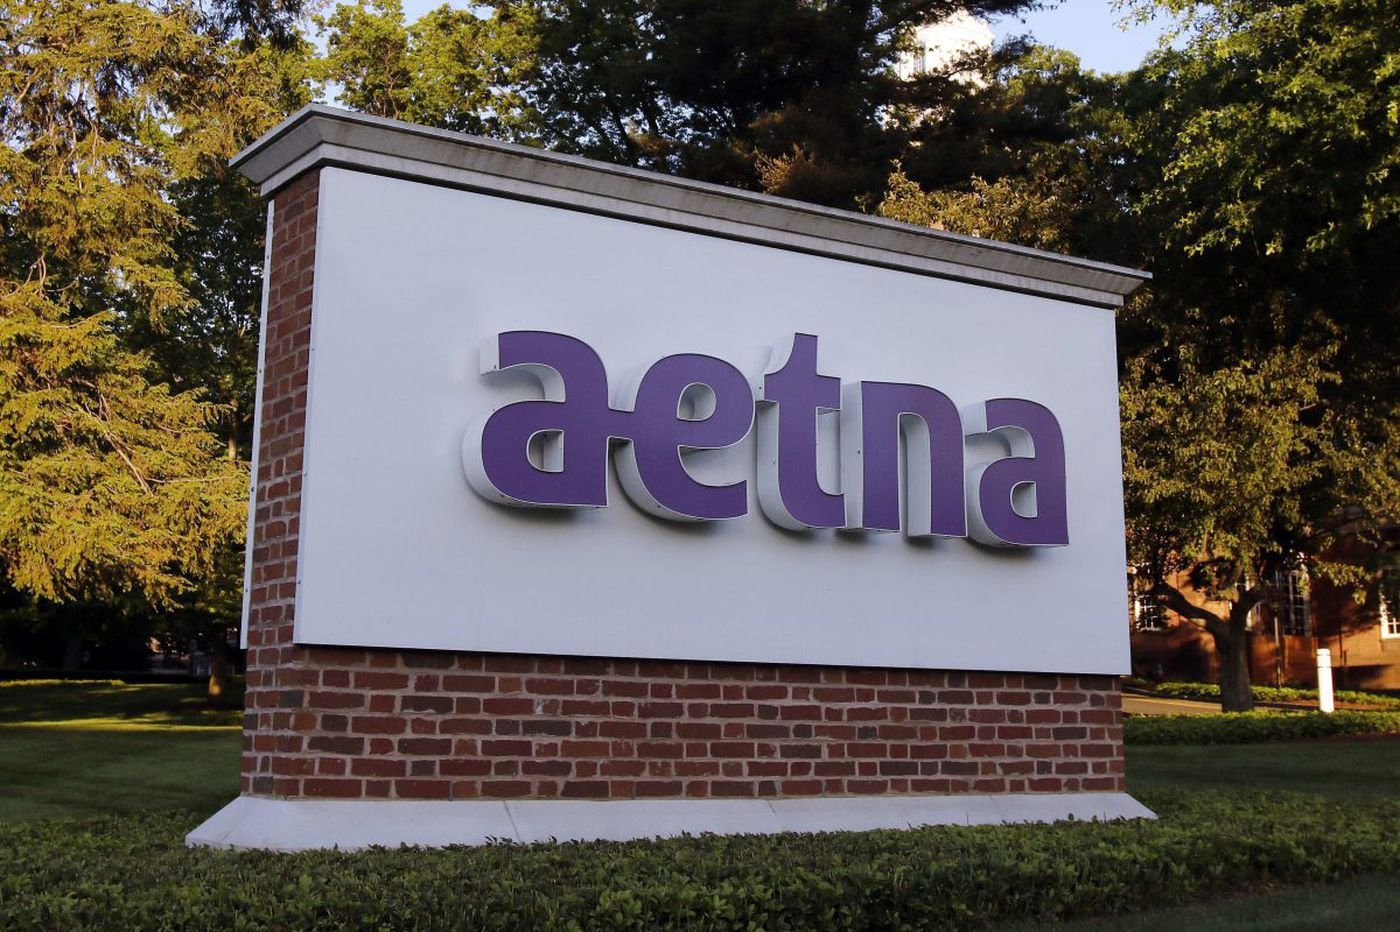 Aetna mailing breached HIV privacy of members